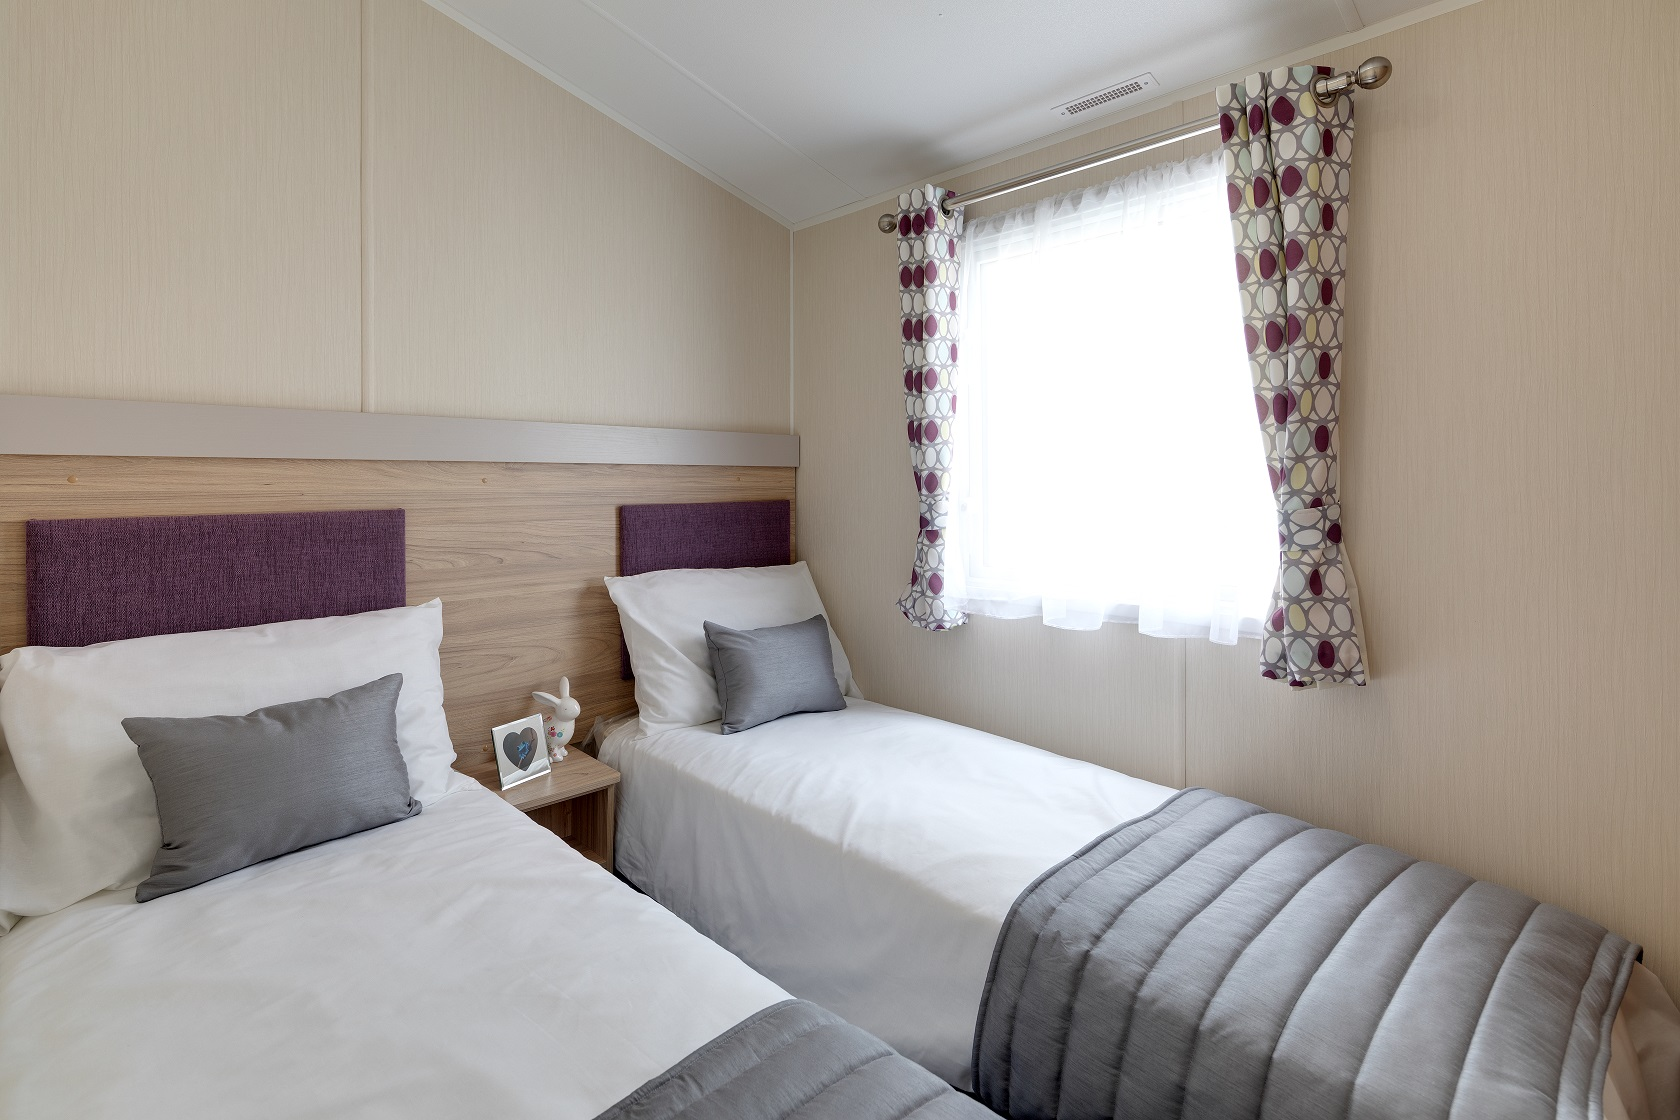 Willerby Linwood: New Static Caravans and Holiday Homes for Sale, Adderstone, Belford Image 5